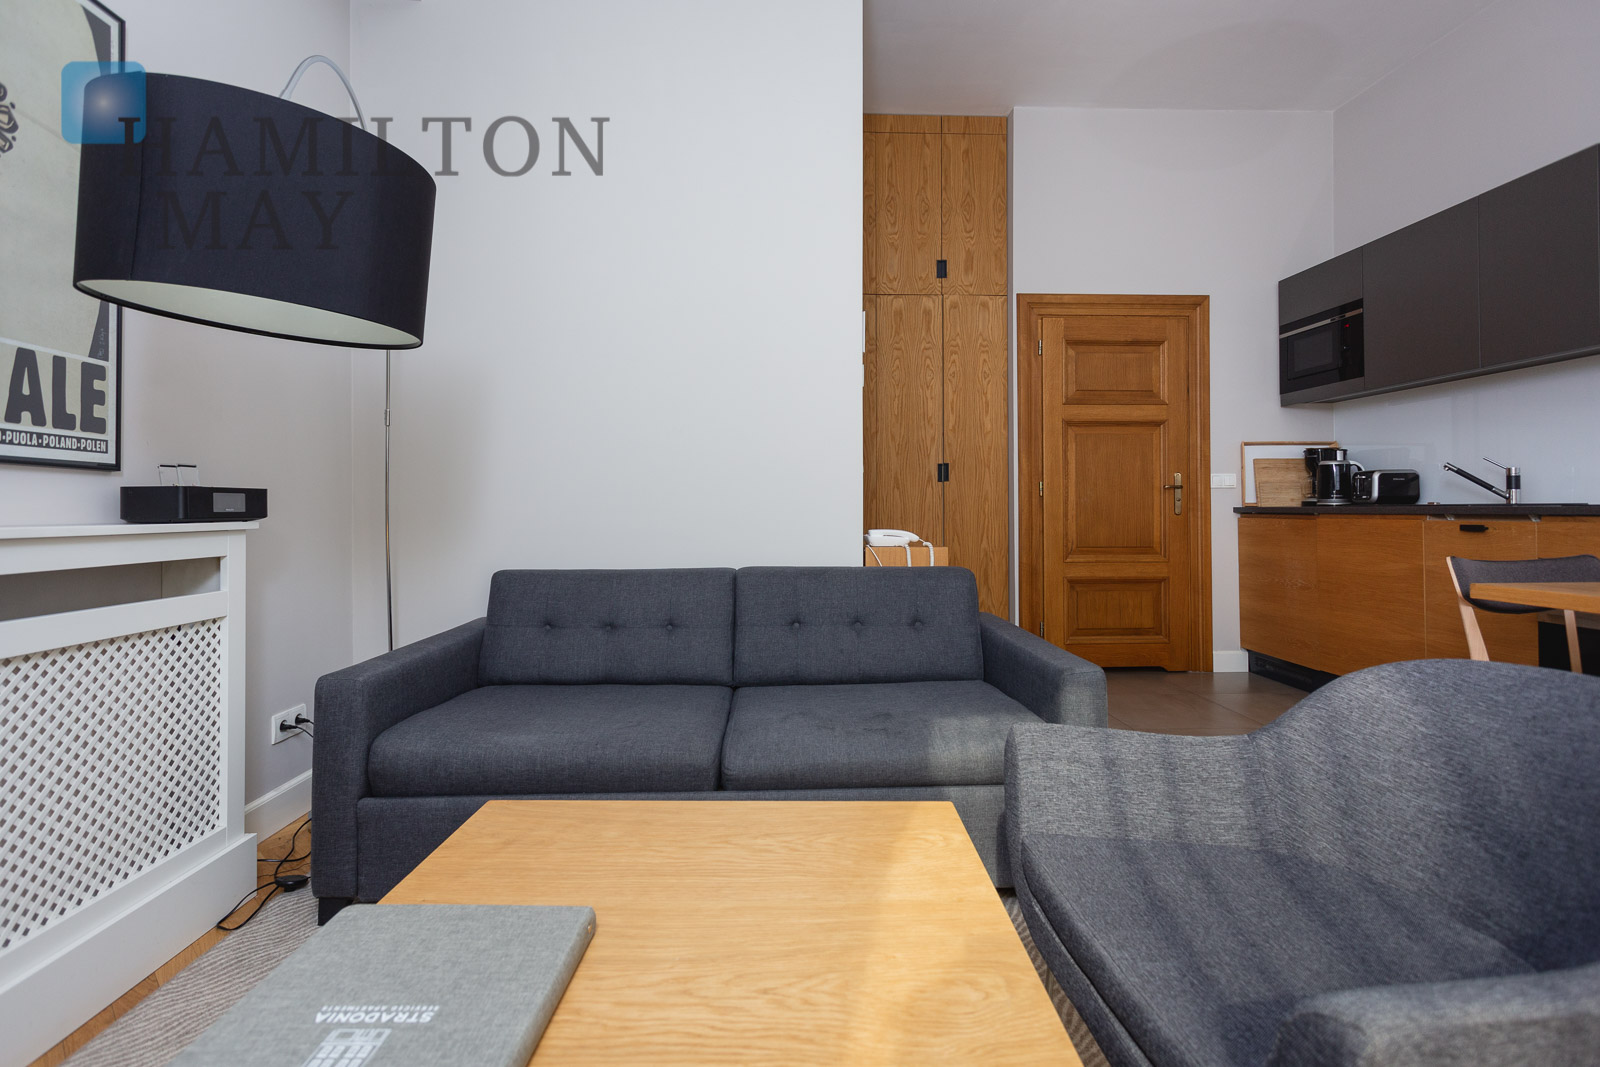 Modern, air-conditioned studio apartment boasting Wawel Castle view Krakow for rent